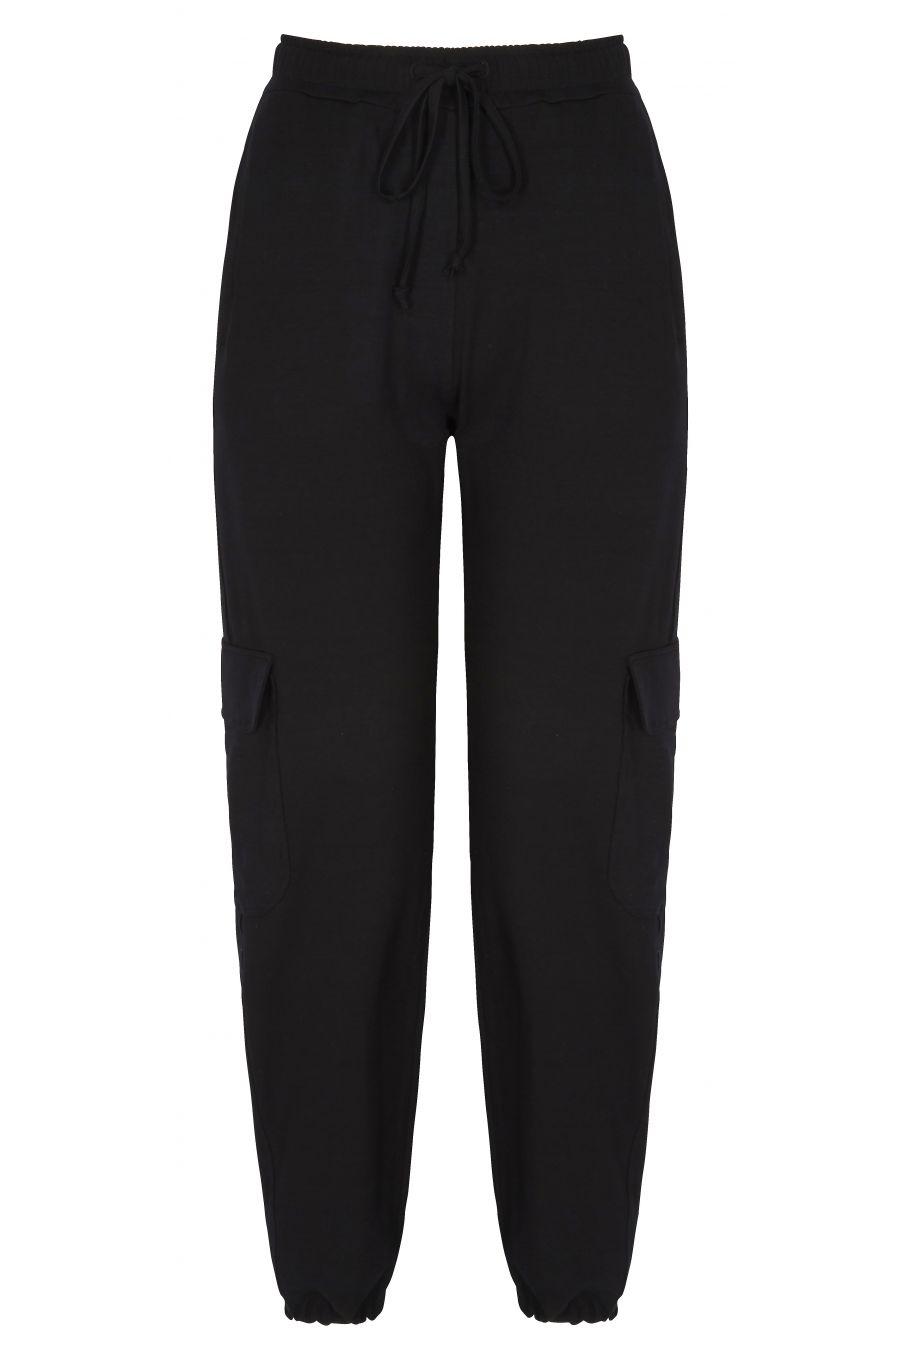 Asquith bamboo yoga harem pants.